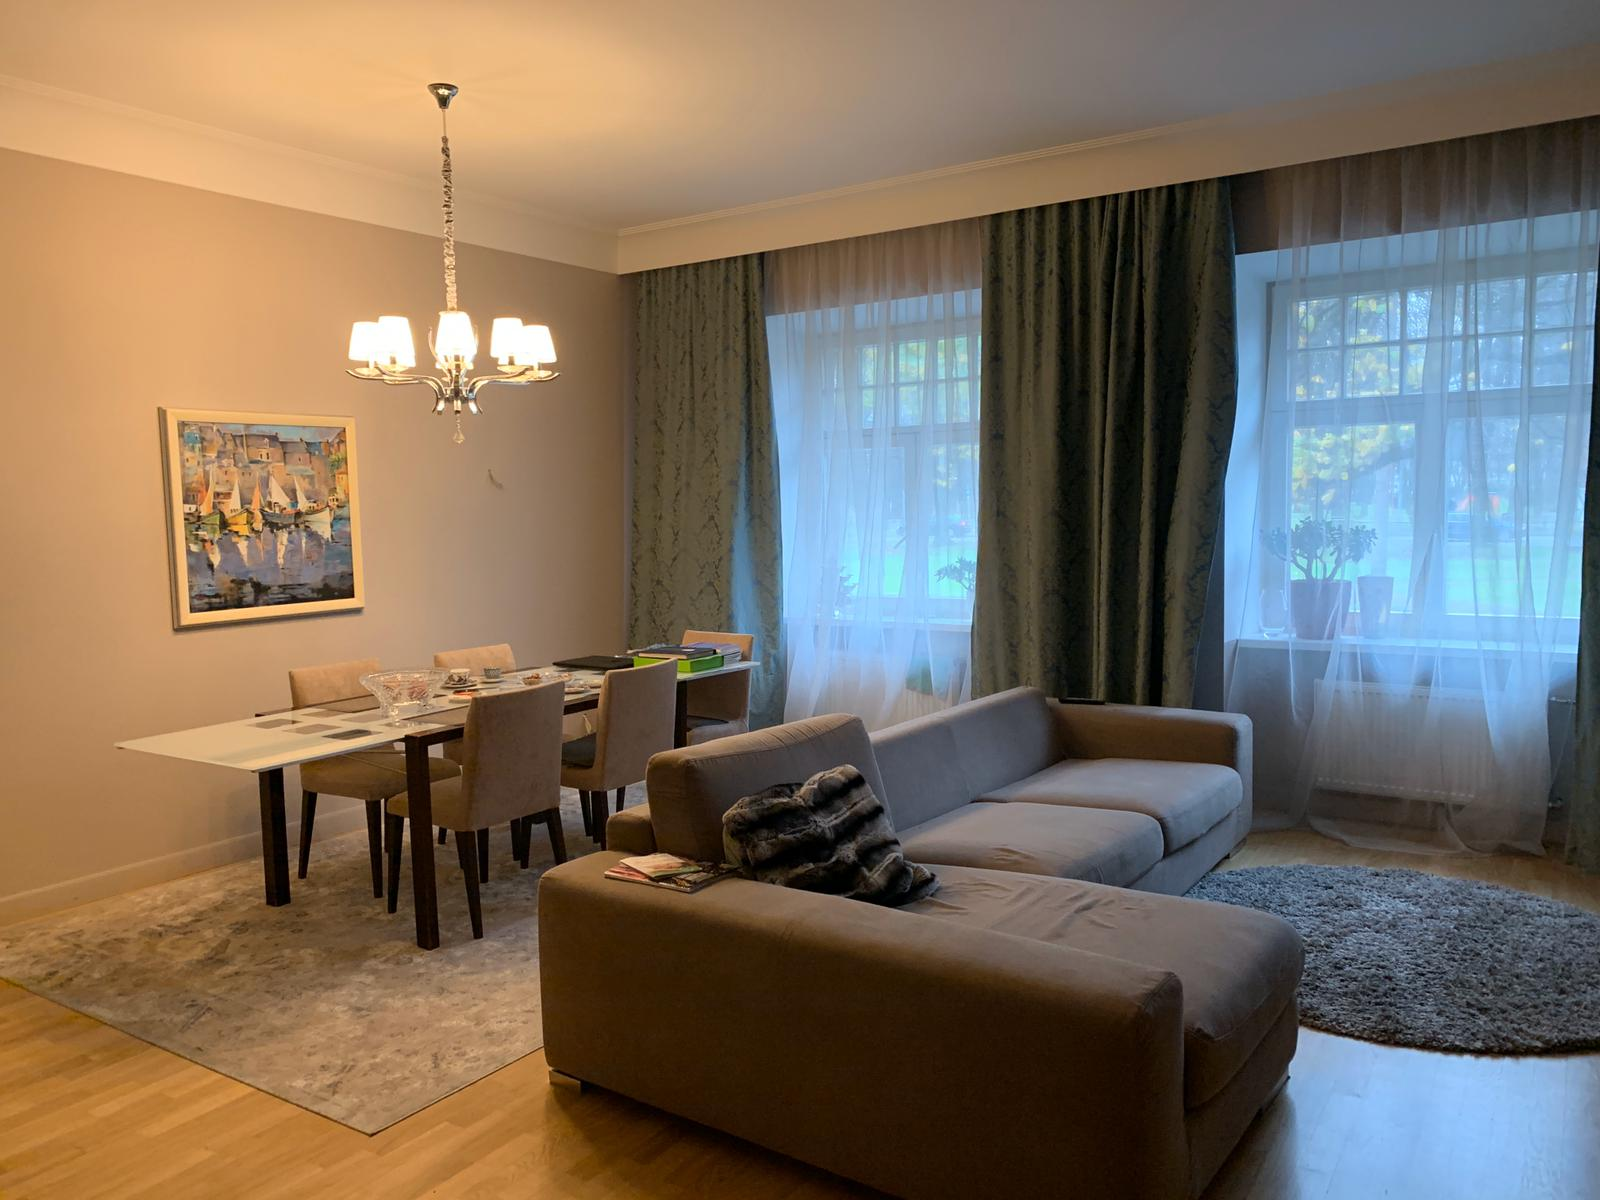 Stylish Apartment for Sale in a Quiet City Centre